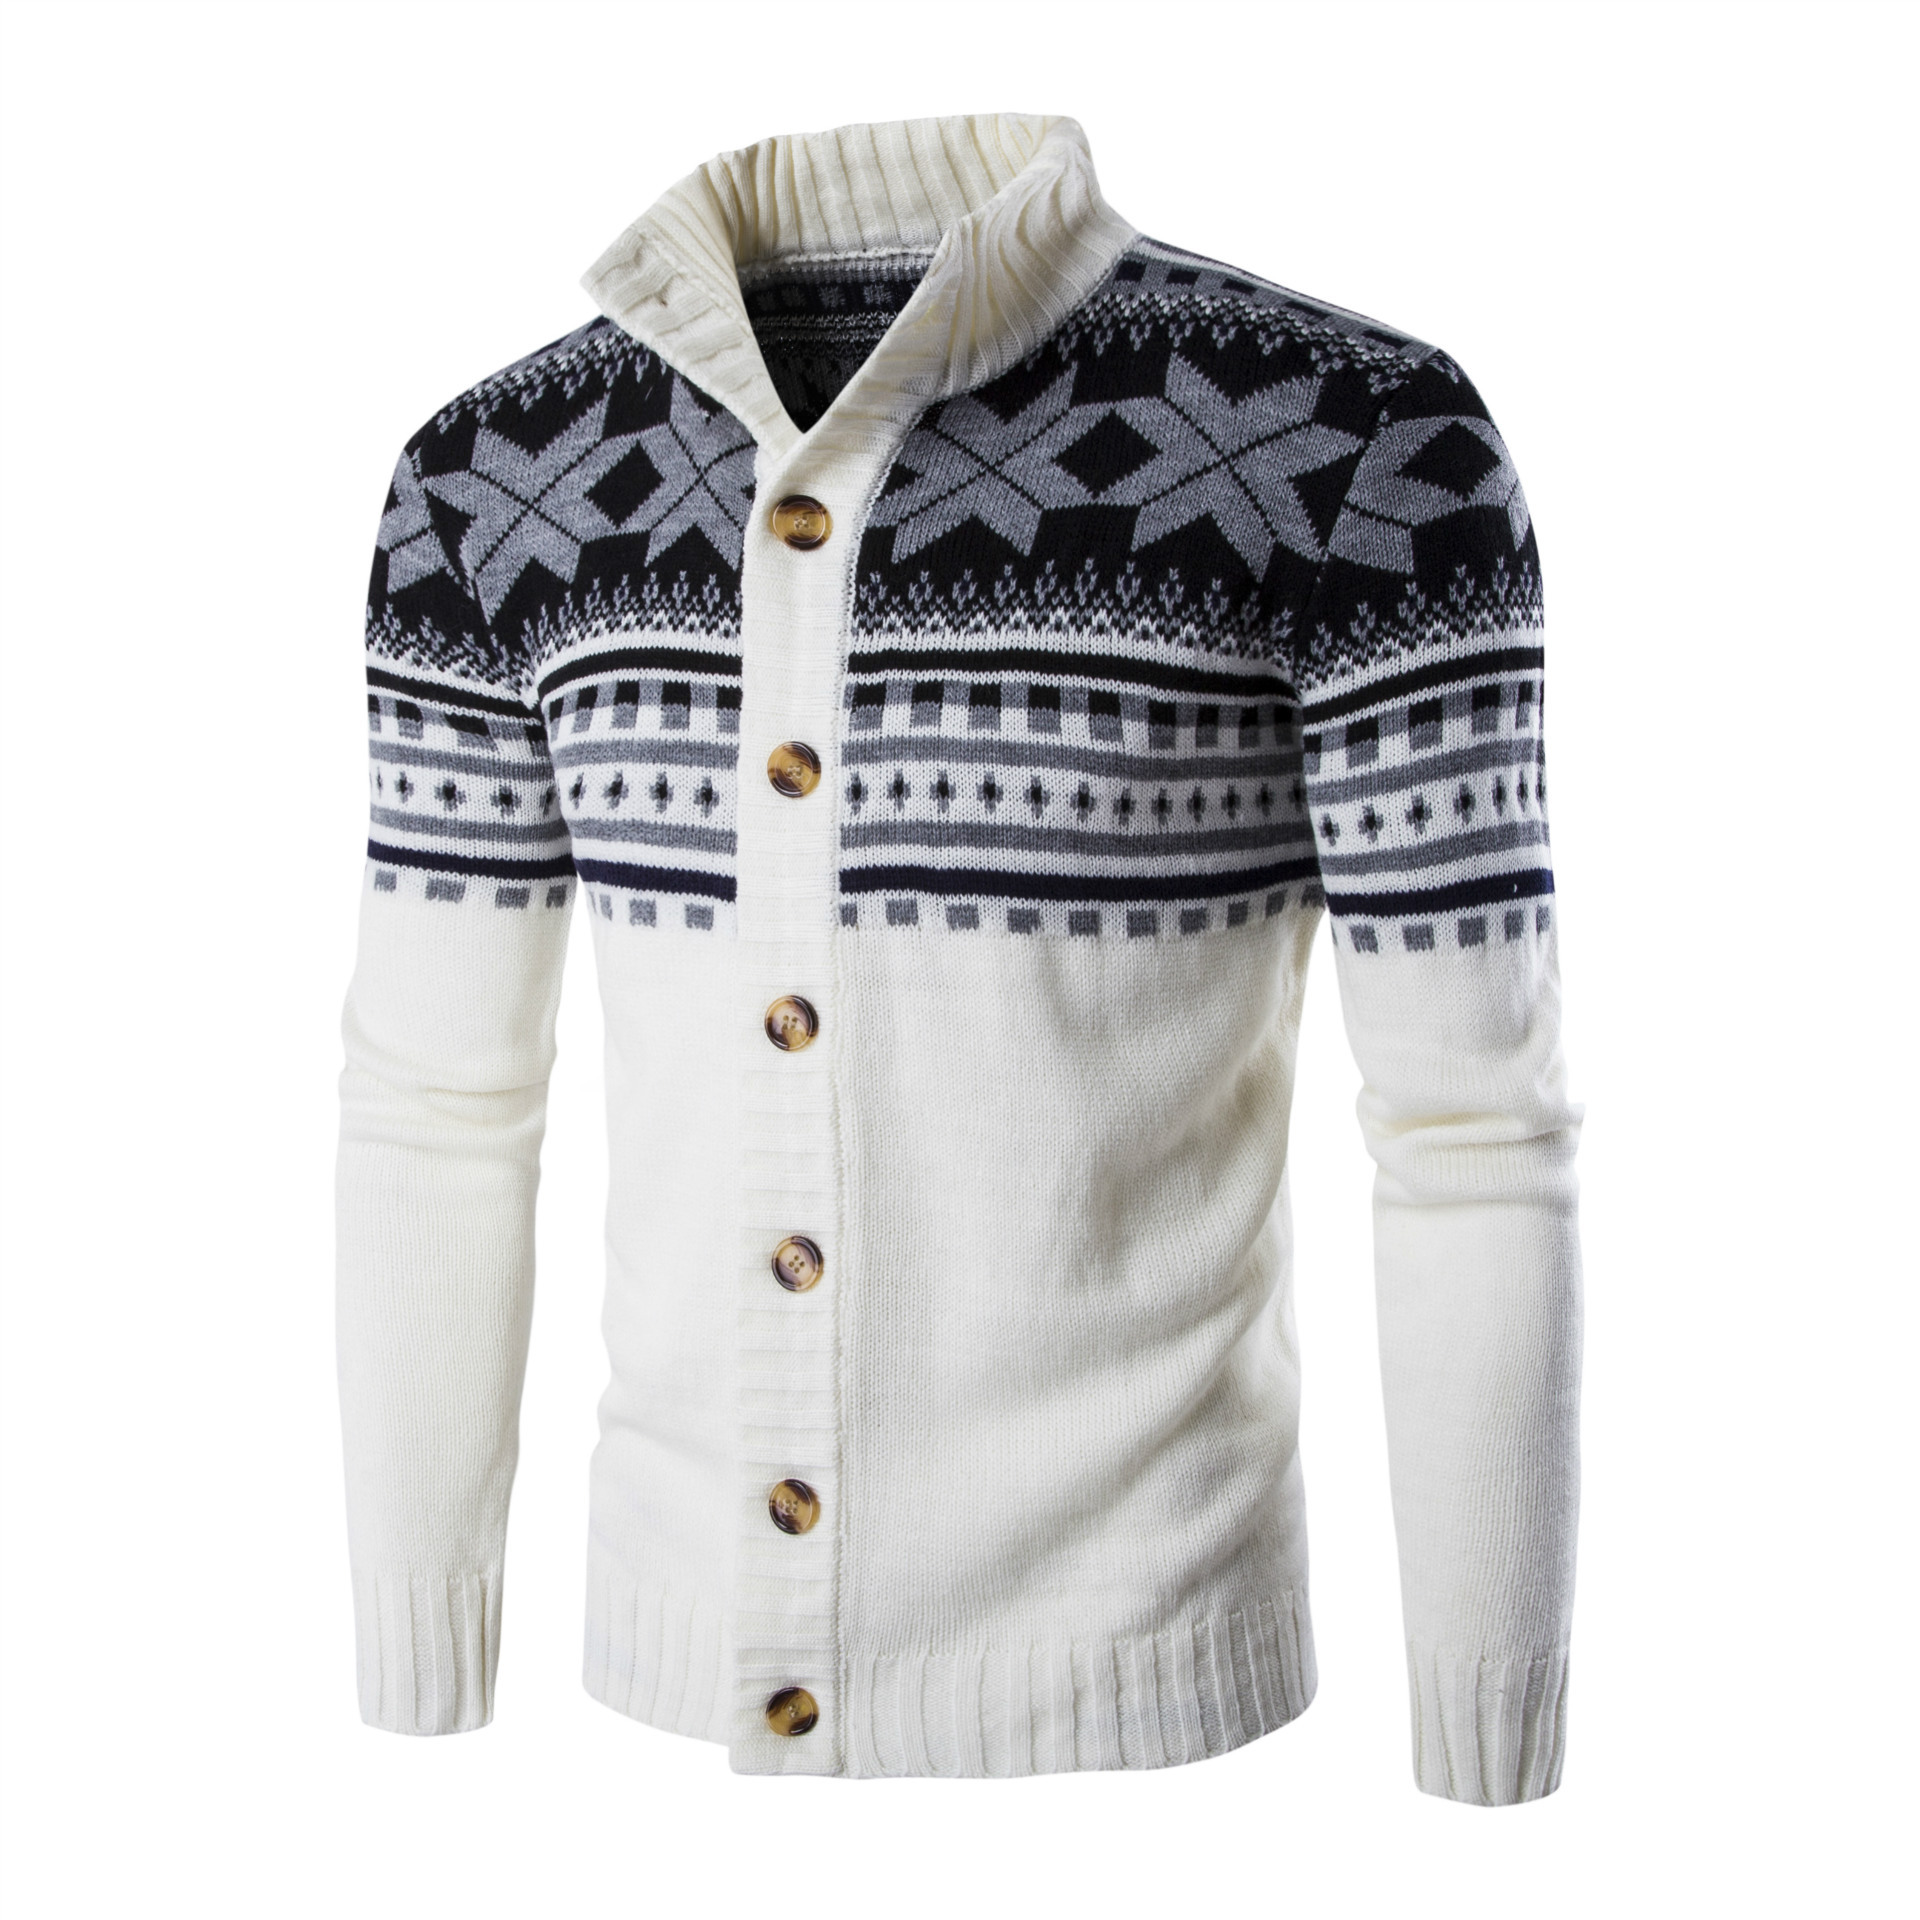 Autumn And Winter New Style Men's Cardigan Sweater European And American Fashion Cultural Printed Slim Fit Men's Sweaters